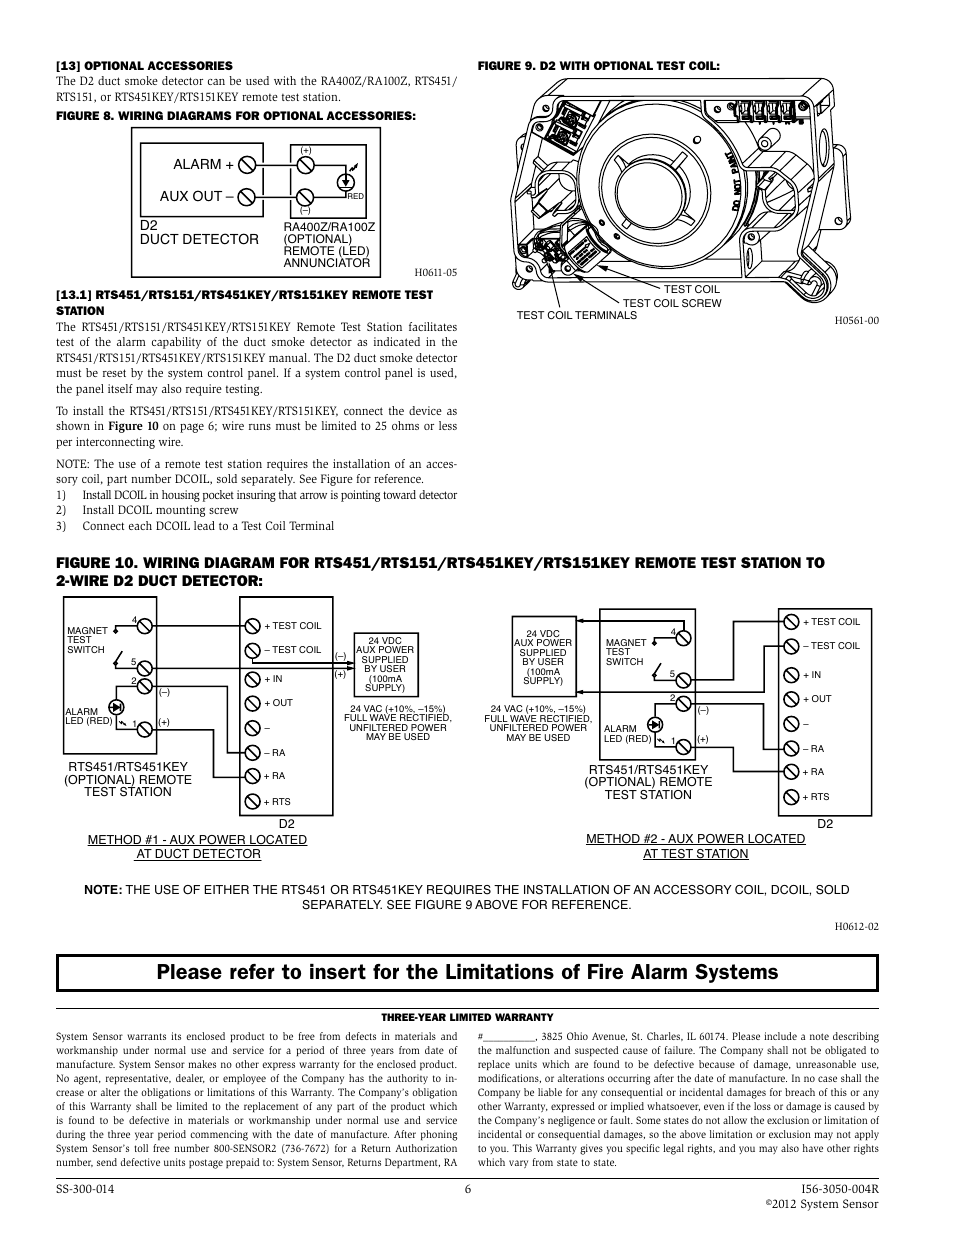 alarm aux out d2 duct detector system sensor d2 user manual alarm aux out d2 duct detector system sensor d2 user manual page 6 6